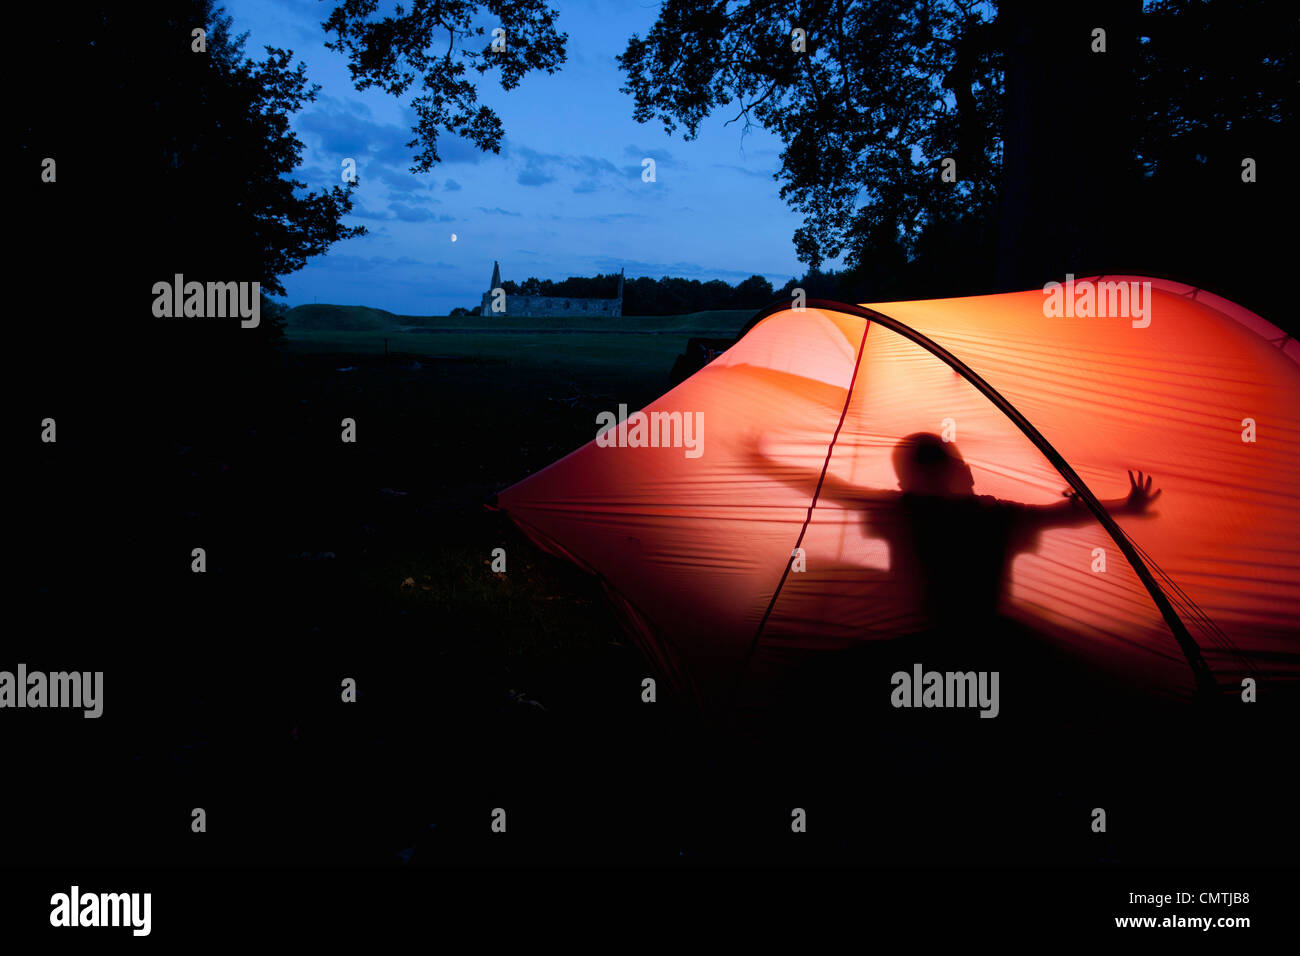 Person in tent - Stock Image